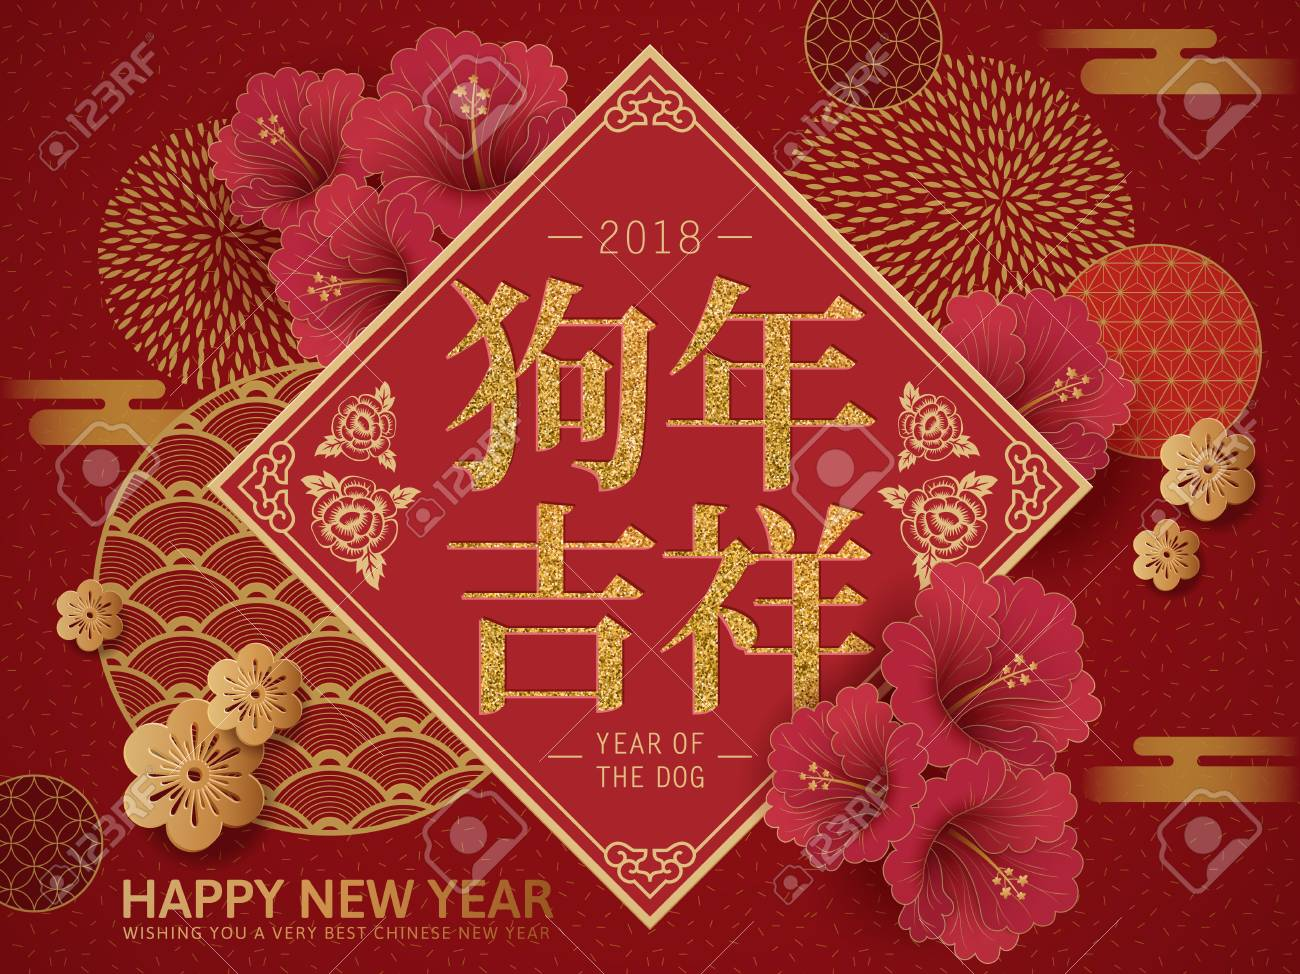 Happy Chinese New Year design, Year of the dog spring couplet with peony and plum flowers in red and gold colors, happy dog year in Chinese words - 90224663